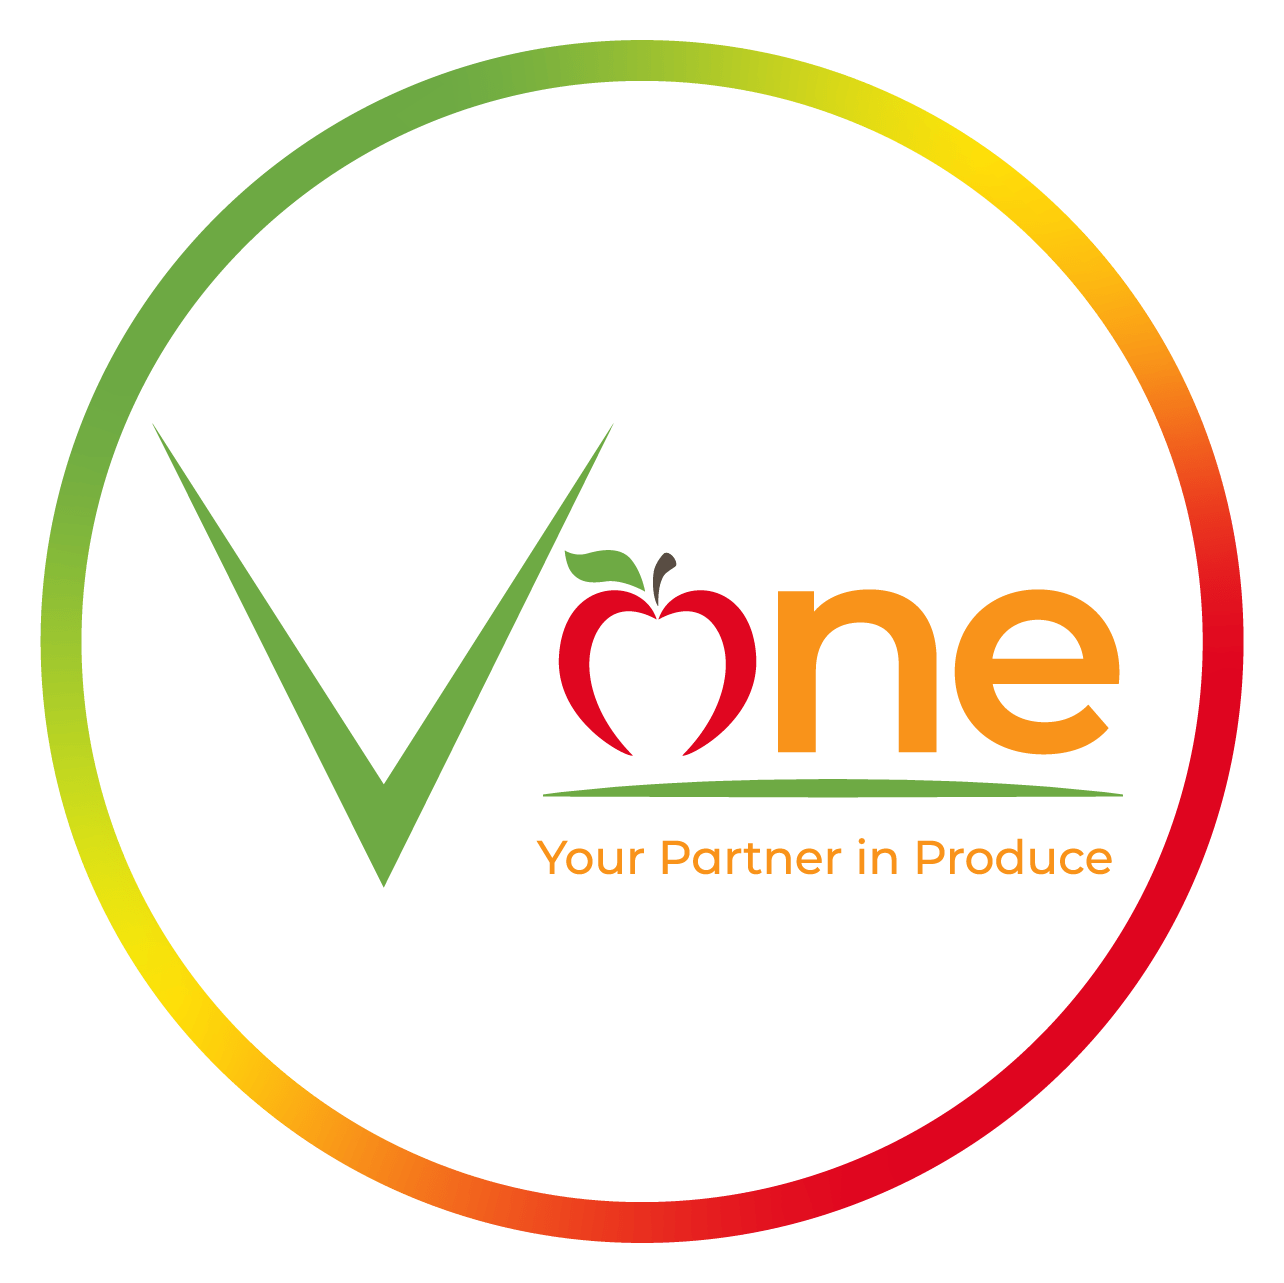 V One main logo